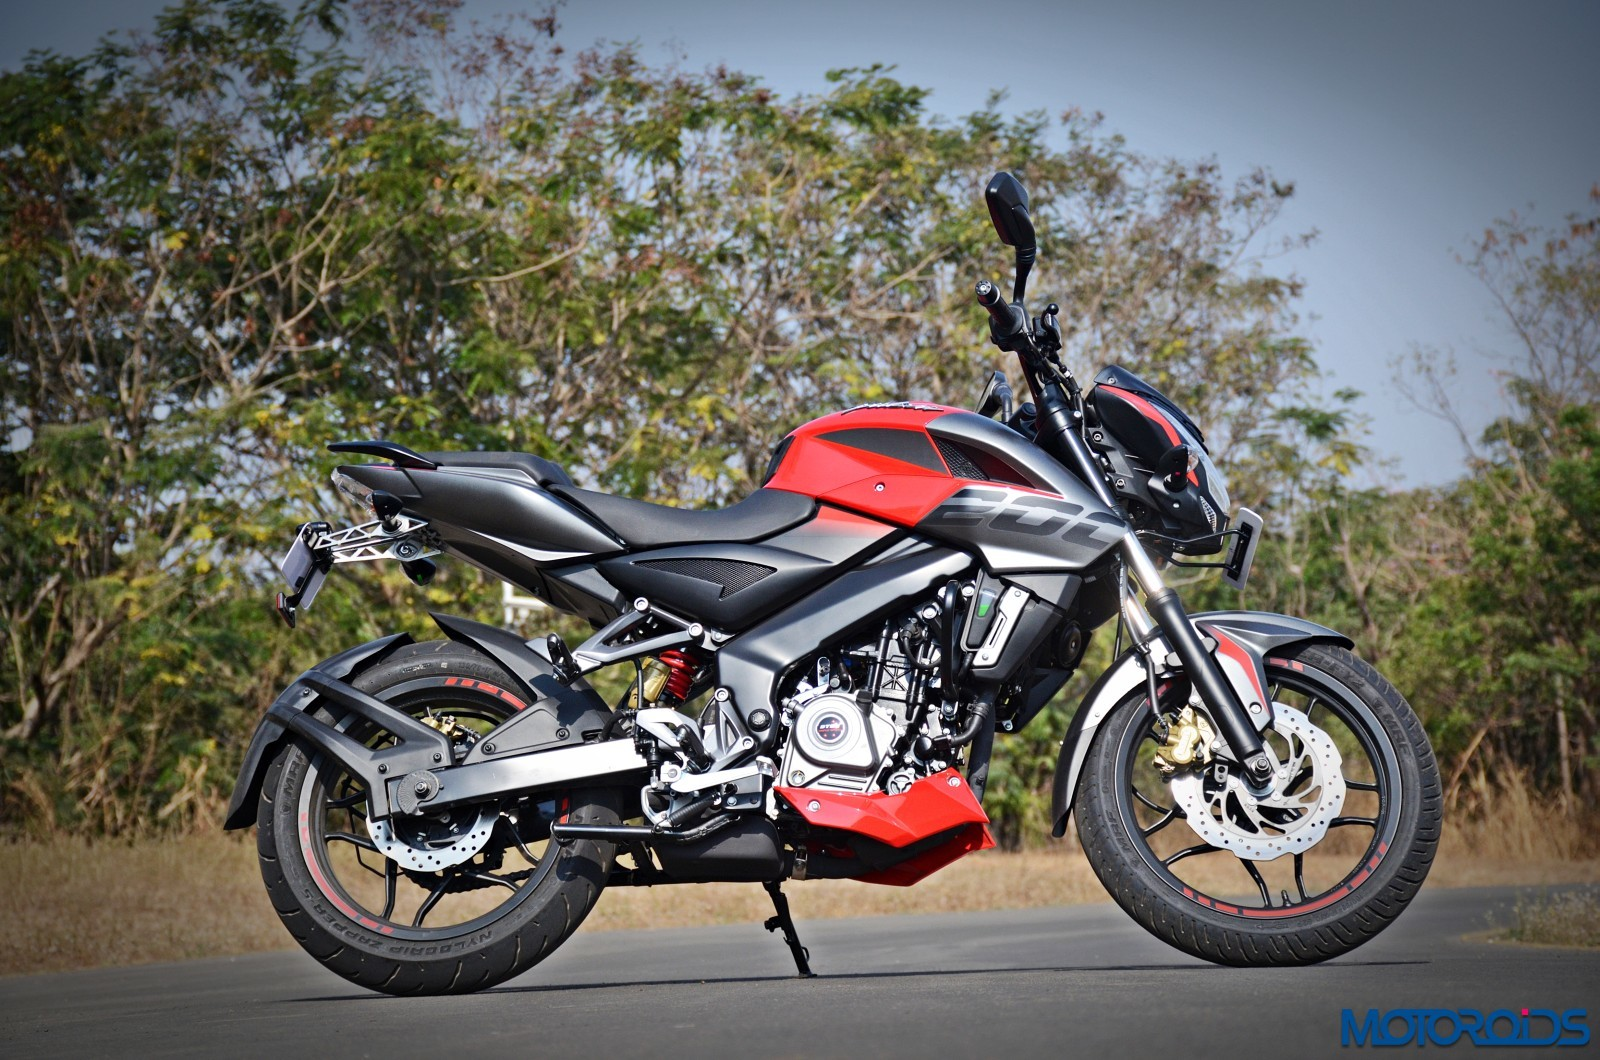 New 2017 Pulsar 200ns First Ride Review Images Price